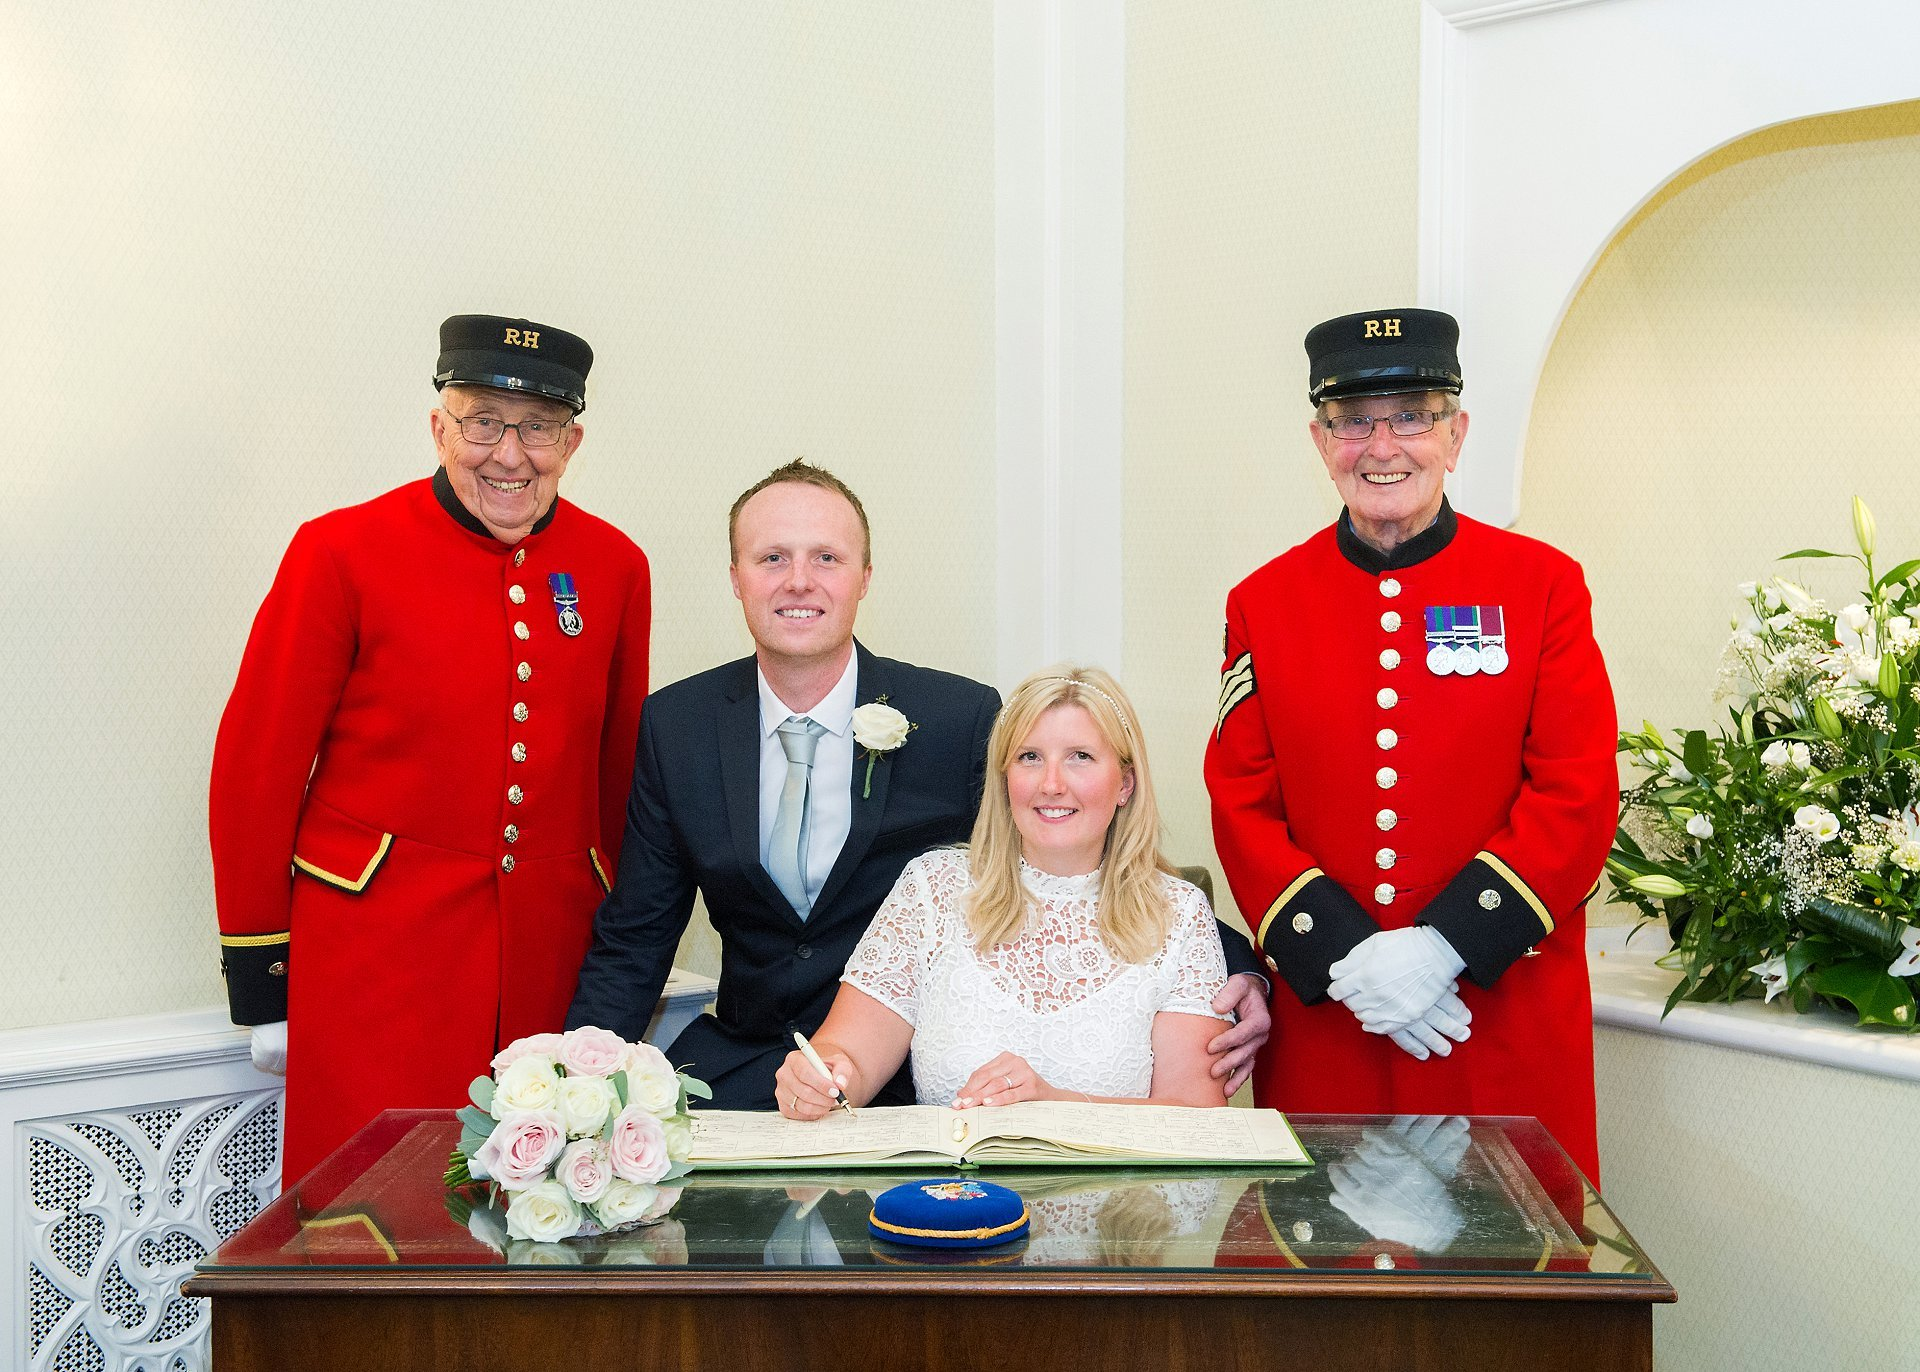 Chelsea Pensioners as witnesses for a small family wedding in the Rossetti Room at Chelsea Town Hall